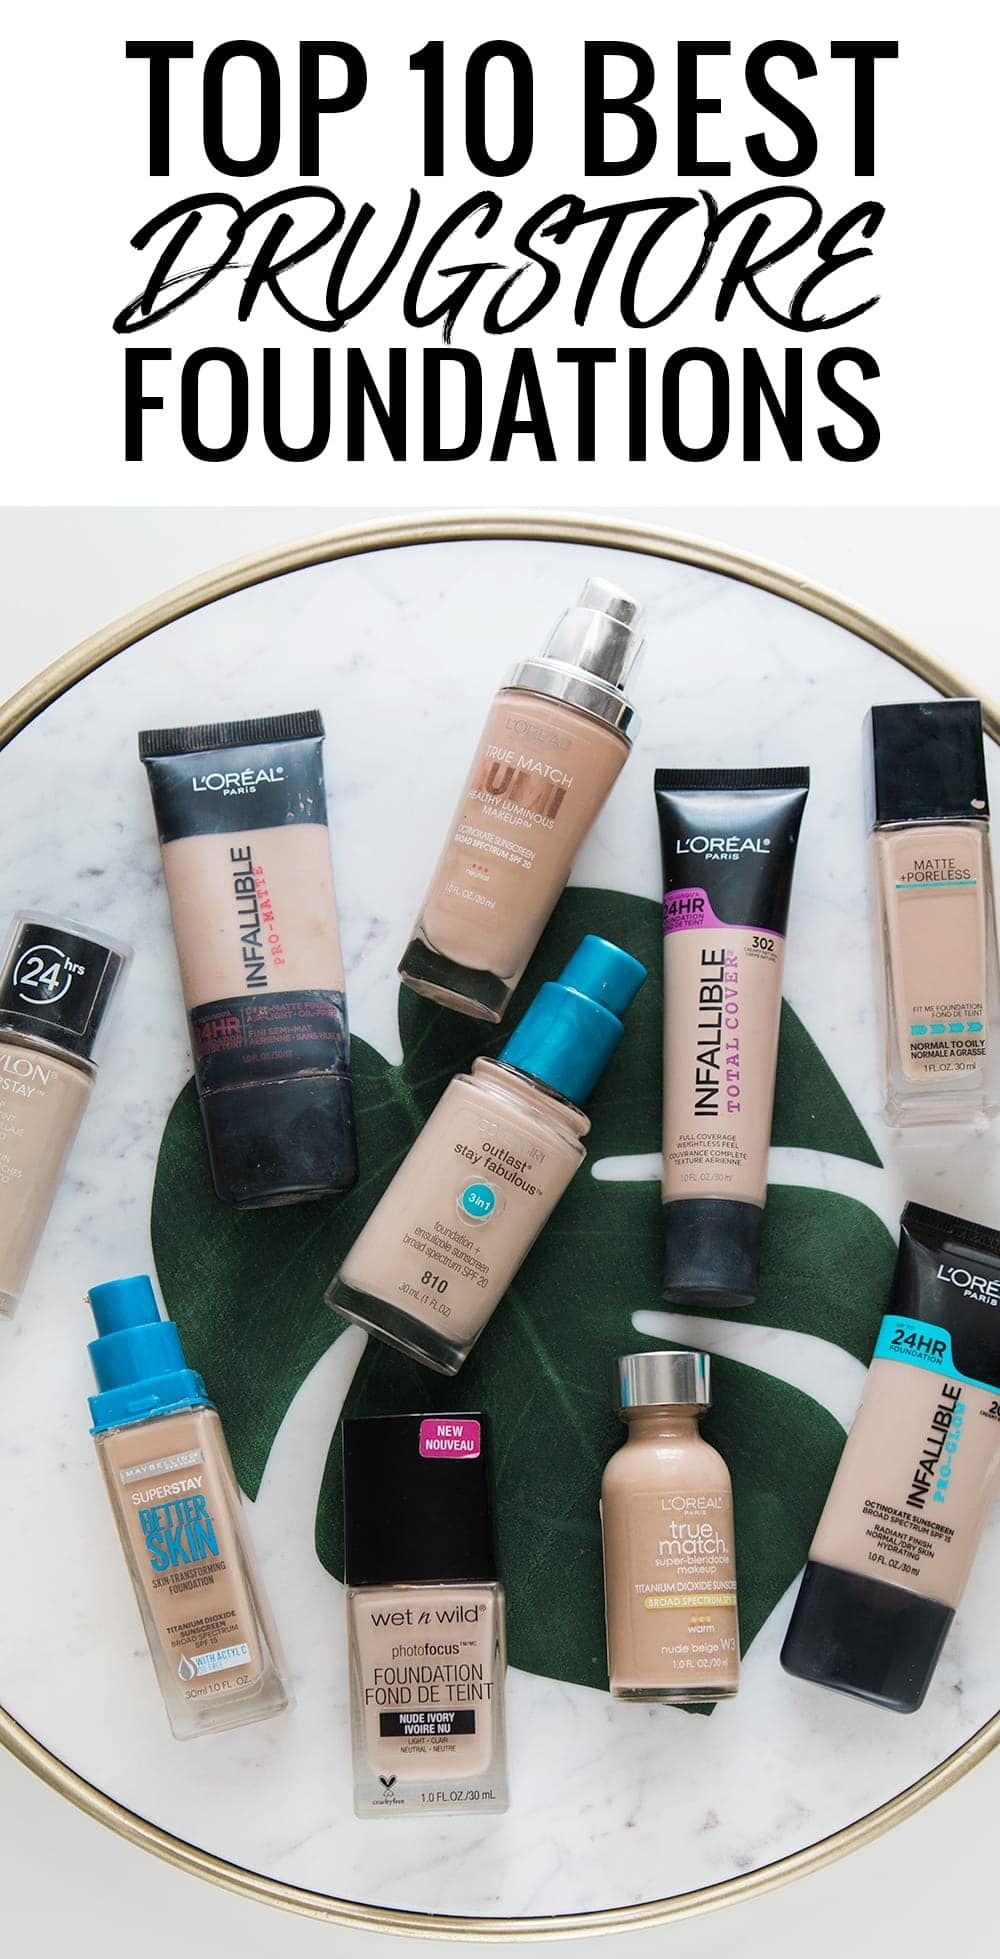 Top 10 Drugstore Foundations You'll Want to Buy Best